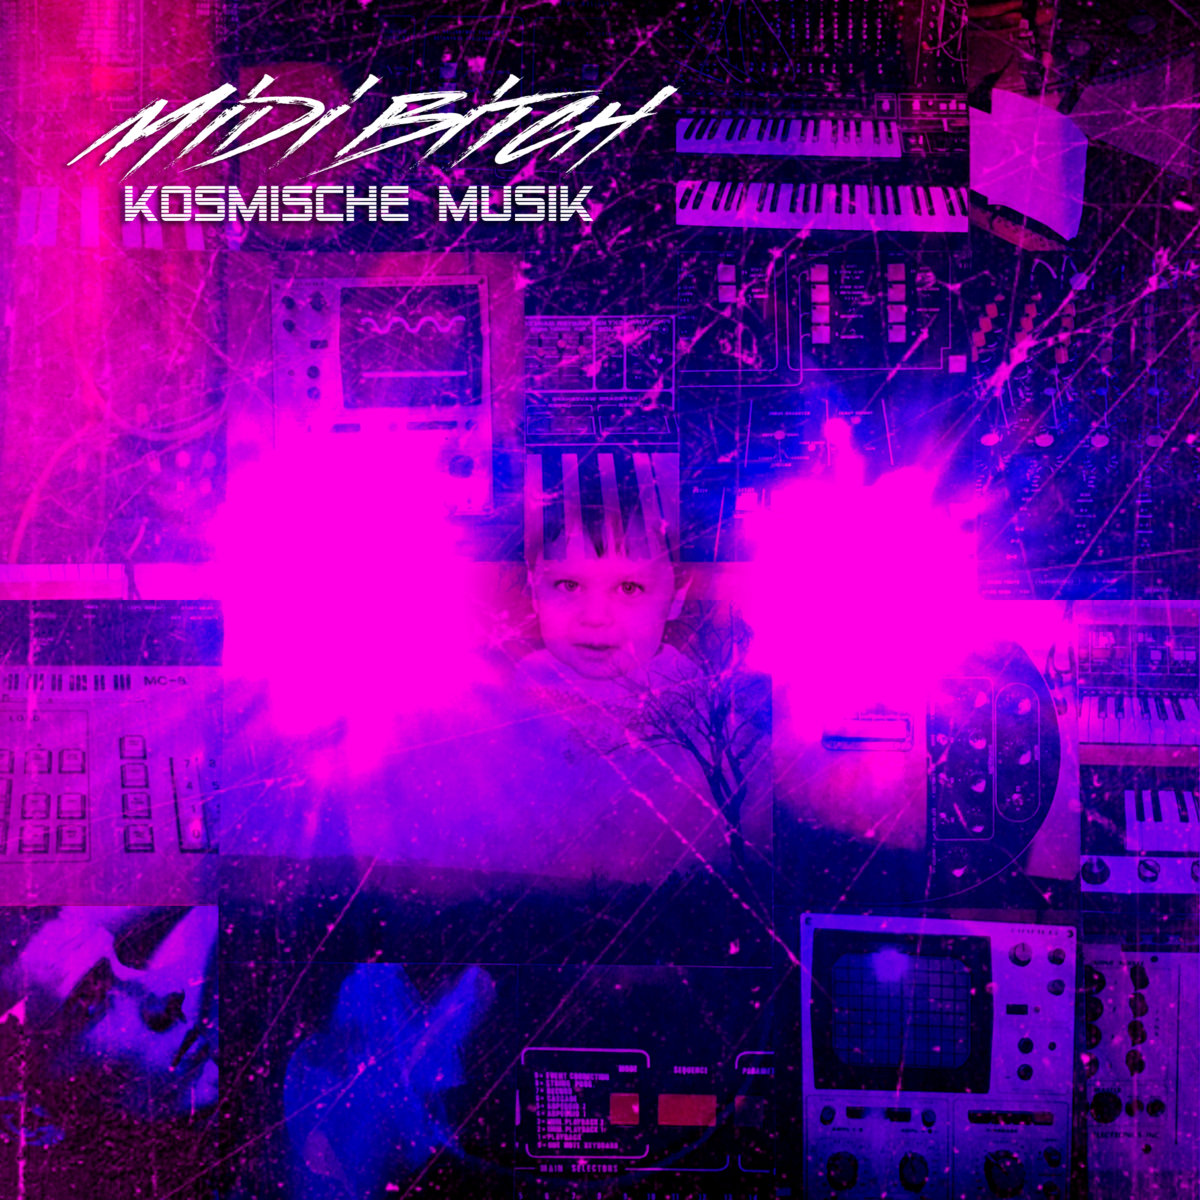 KOSMISCHE MUSIK 1 by MiDi BiTCH